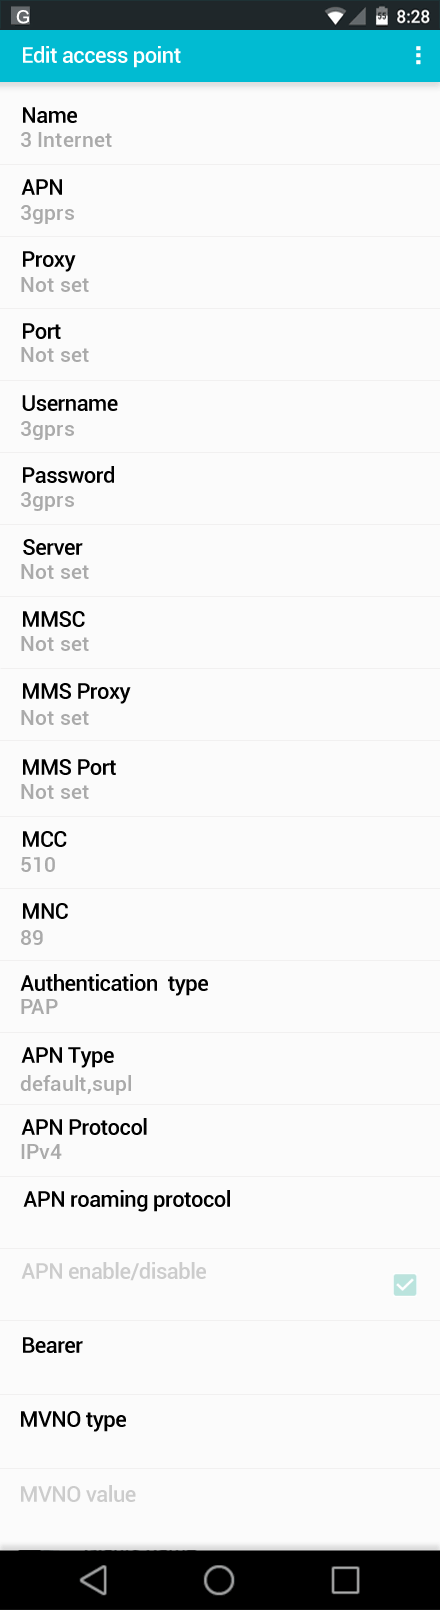 3 Internet APN settings for Android